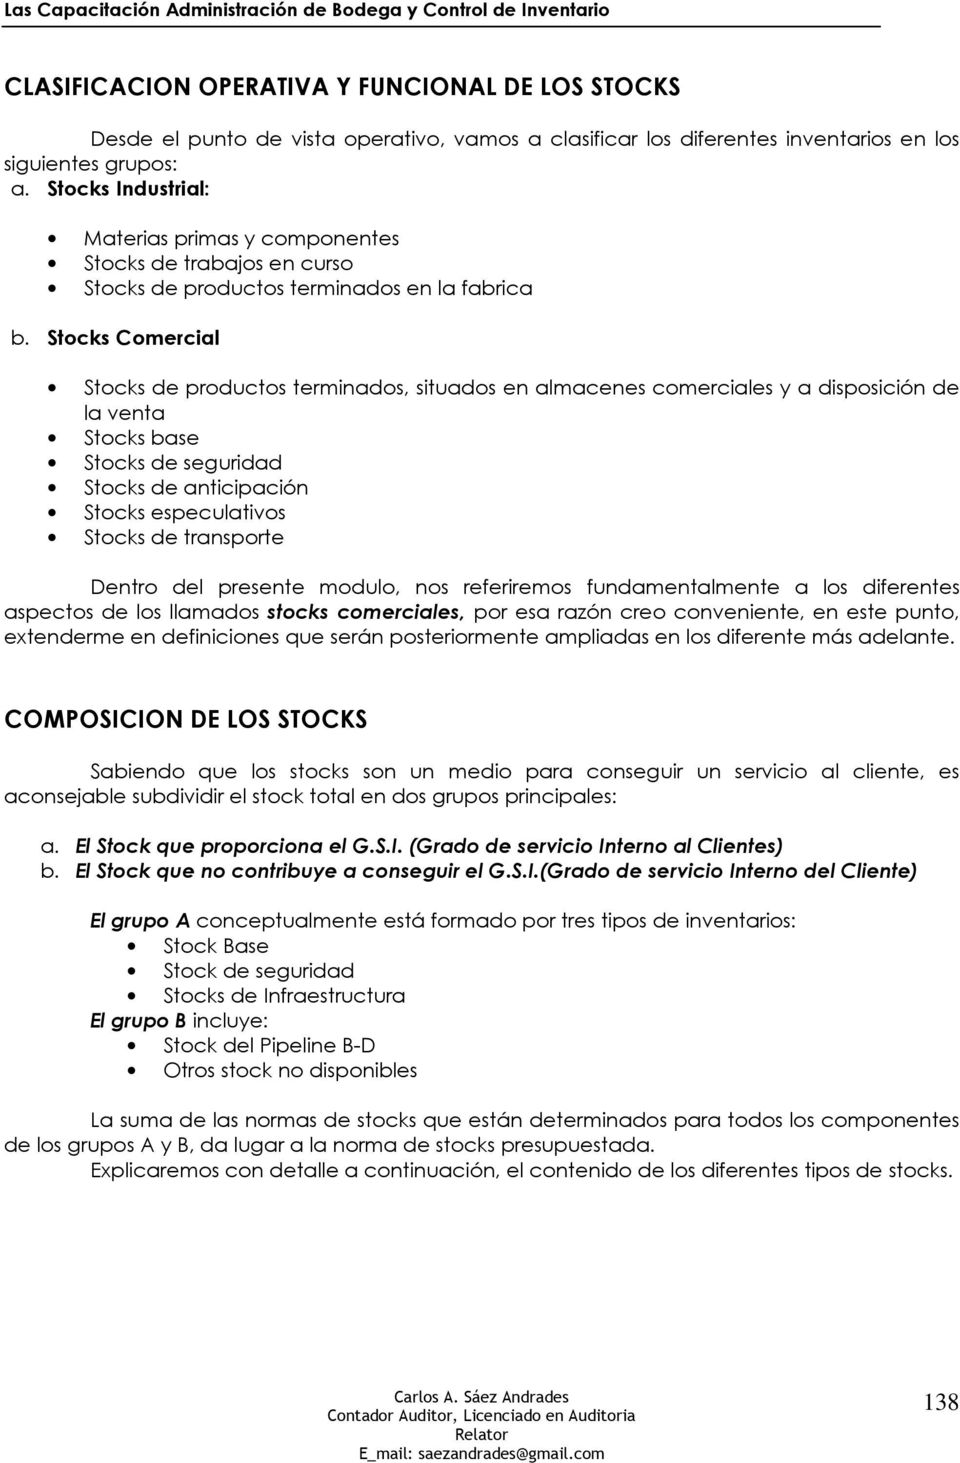 Stocks Comercial Stocks de productos terminados, situados en almacenes comerciales y a disposición de la venta Stocks base Stocks de seguridad Stocks de anticipación Stocks especulativos Stocks de